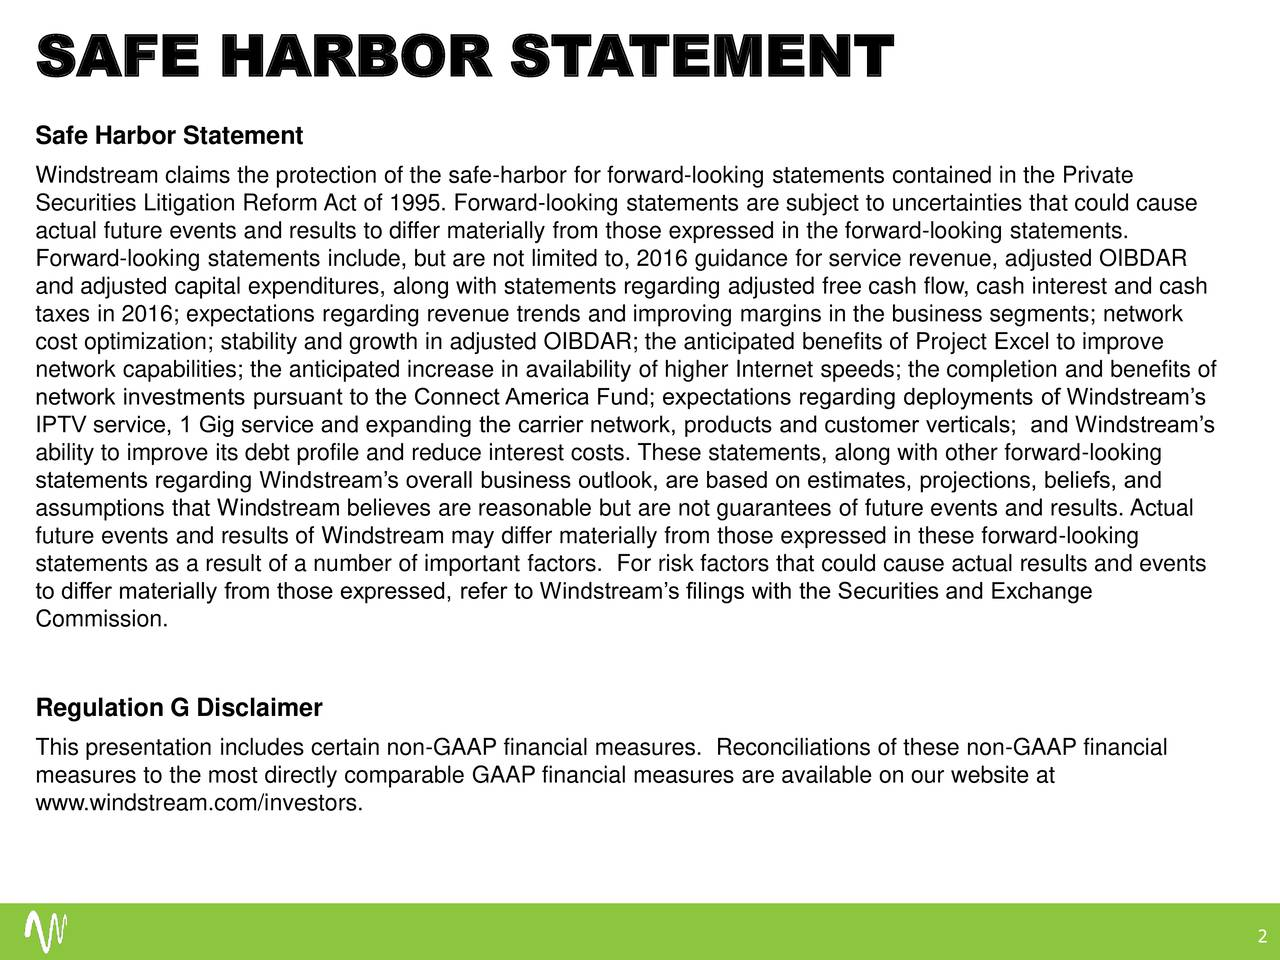 Safe Harbor Statement Windstream claims the protection of the safe-harbor for forward-looking statements contained in the Private Securities Litigation Reform Act of 1995. Forward-looking statements are subject to uncertainties that could cause actual future events and results to differ materially from those expressed in the forward-looking statements. Forward-looking statements include, but are not limited to, 2016 guidance for service revenue, adjusted OIBDAR and adjusted capital expenditures, along with statements regarding adjusted free cash flow, cash interest and cash taxes in 2016; expectations regarding revenue trends and improving margins in the business segments; network cost optimization; stability and growth in adjusted OIBDAR; the anticipated benefits of Project Excel to improve network capabilities; the anticipated increase in availability of higher Internet speeds; the completion and benefits of network investments pursuant to the Connect America Fund; expectations regarding deployments of Windstreams IPTV service, 1 Gig service and expanding the carrier network, products and customer verticals; and Windstreams ability to improve its debt profile and reduce interest costs. These statements, along with other forward-looking statements regarding Windstreams overall business outlook, are based on estimates, projections, beliefs, and assumptions that Windstream believes are reasonable but are not guarantees of future events and results. Actual future events and results of Windstream may differ materially from those expressed in these forward-looking statements as a result of a number of important factors. For risk factors that could cause actual results and events to differ materially from those expressed, refer to Windstreams filings with the Securities and Exchange Commission. Regulation G Disclaimer This presentation includes certain non-GAAP financial measures. Reconciliations of these non-GAAP financial measures to the most directly comparable GAAP f